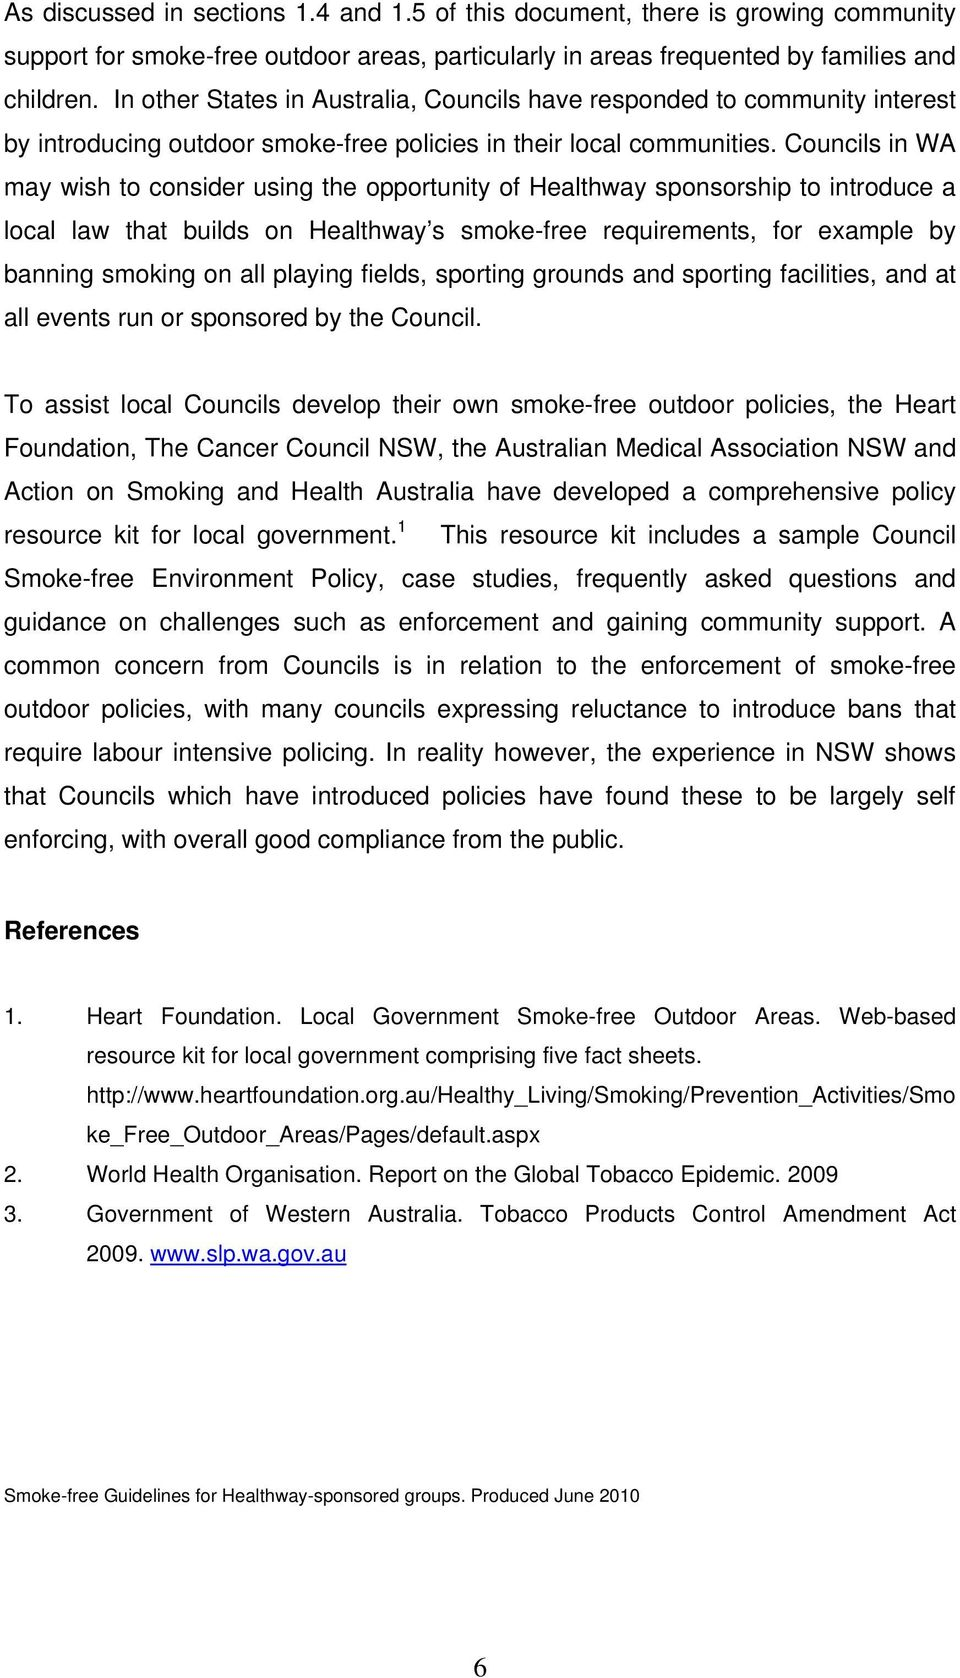 Councils in WA may wish to consider using the opportunity of Healthway sponsorship to introduce a local law that builds on Healthway s smoke-free requirements, for example by banning smoking on all